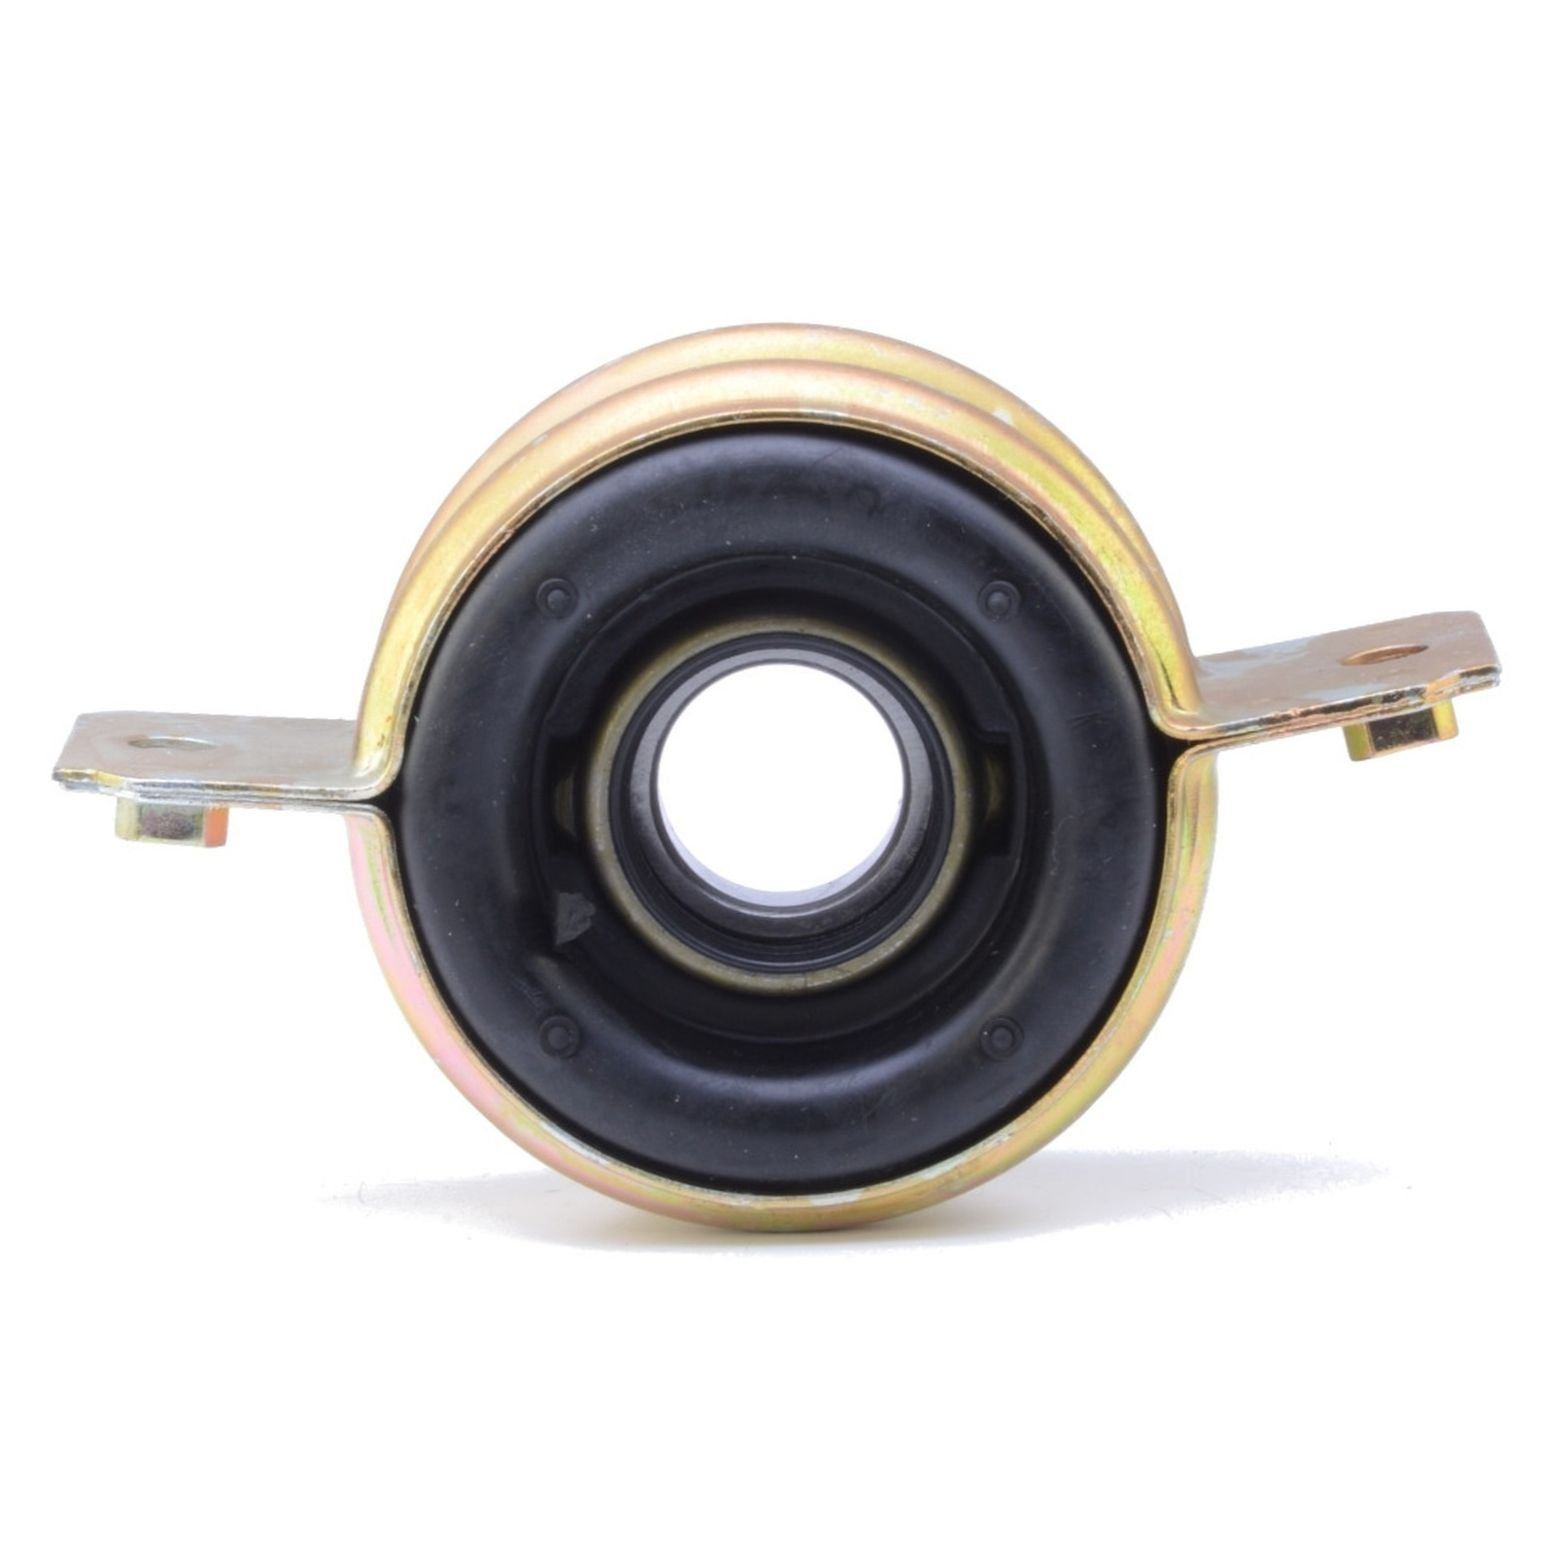 Onix Automotive Center Drive Shaft Center Support Bearing OM8471 by Onix